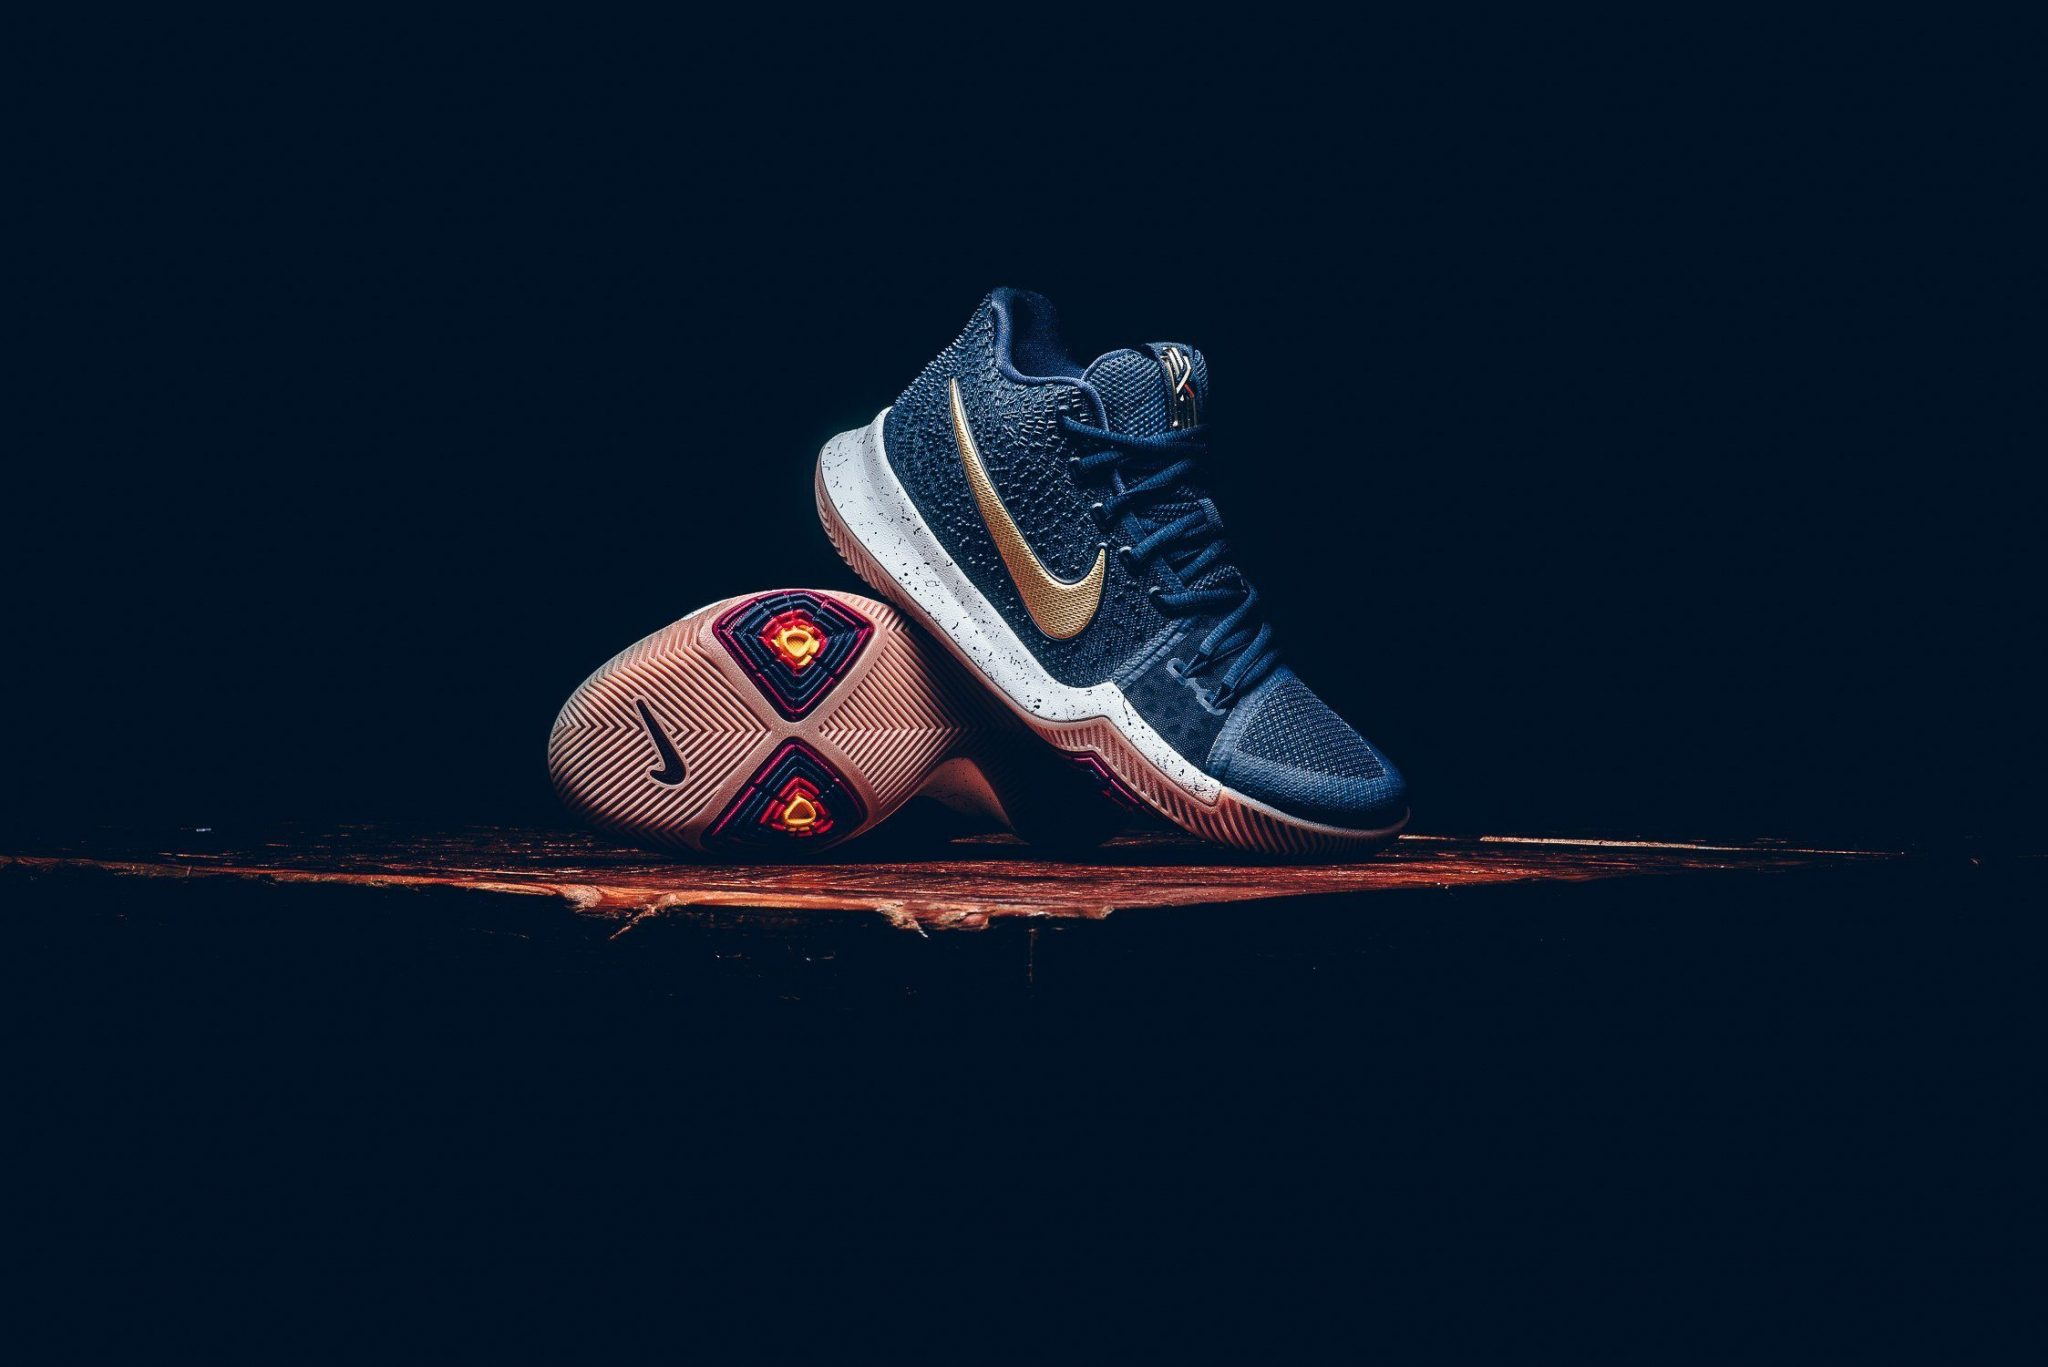 131d8d16484 NBA 2K18 cover star Kyrie Irving releases his Nike Kyrie 3 to retailers  this weekend in an Obsidian primary with Metallic Gold accents.